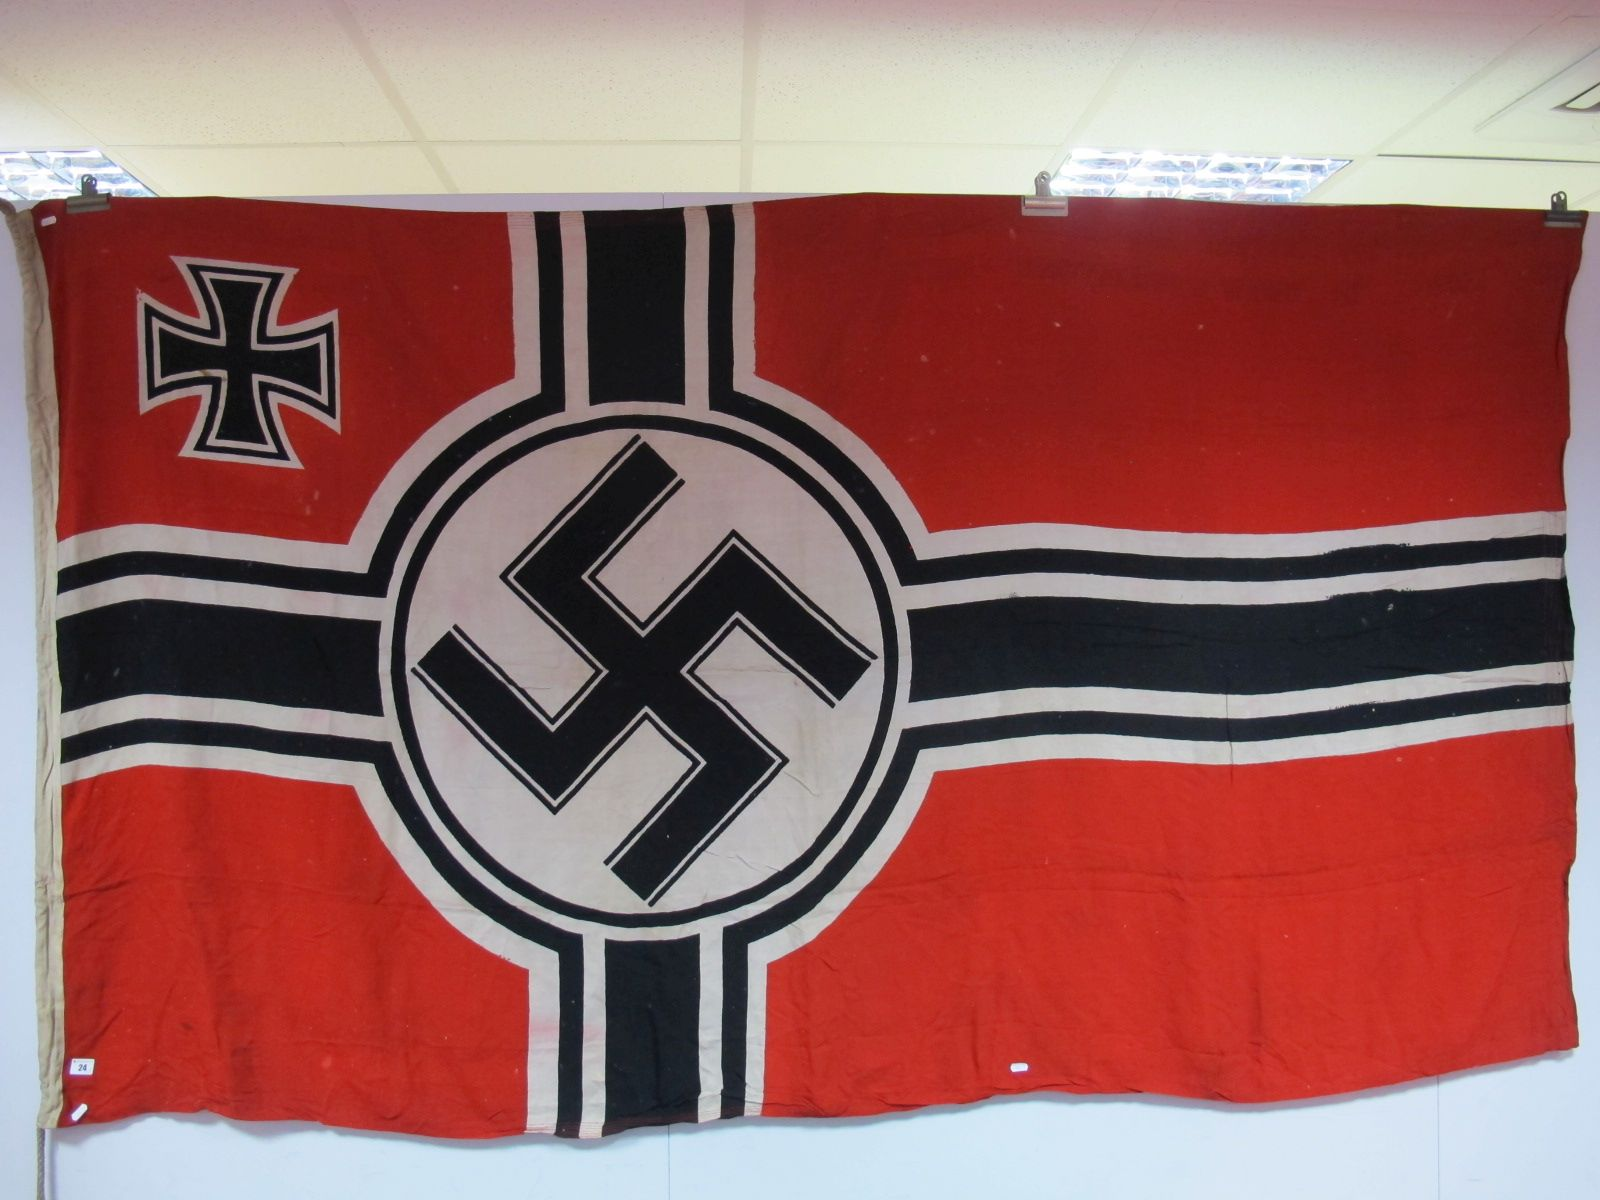 Lot 24 - A Third Reich Flag (Nazi), measuring 8ft x 4 ft 6ins, marked REICHSKNEGSFL, complete with Halyard.